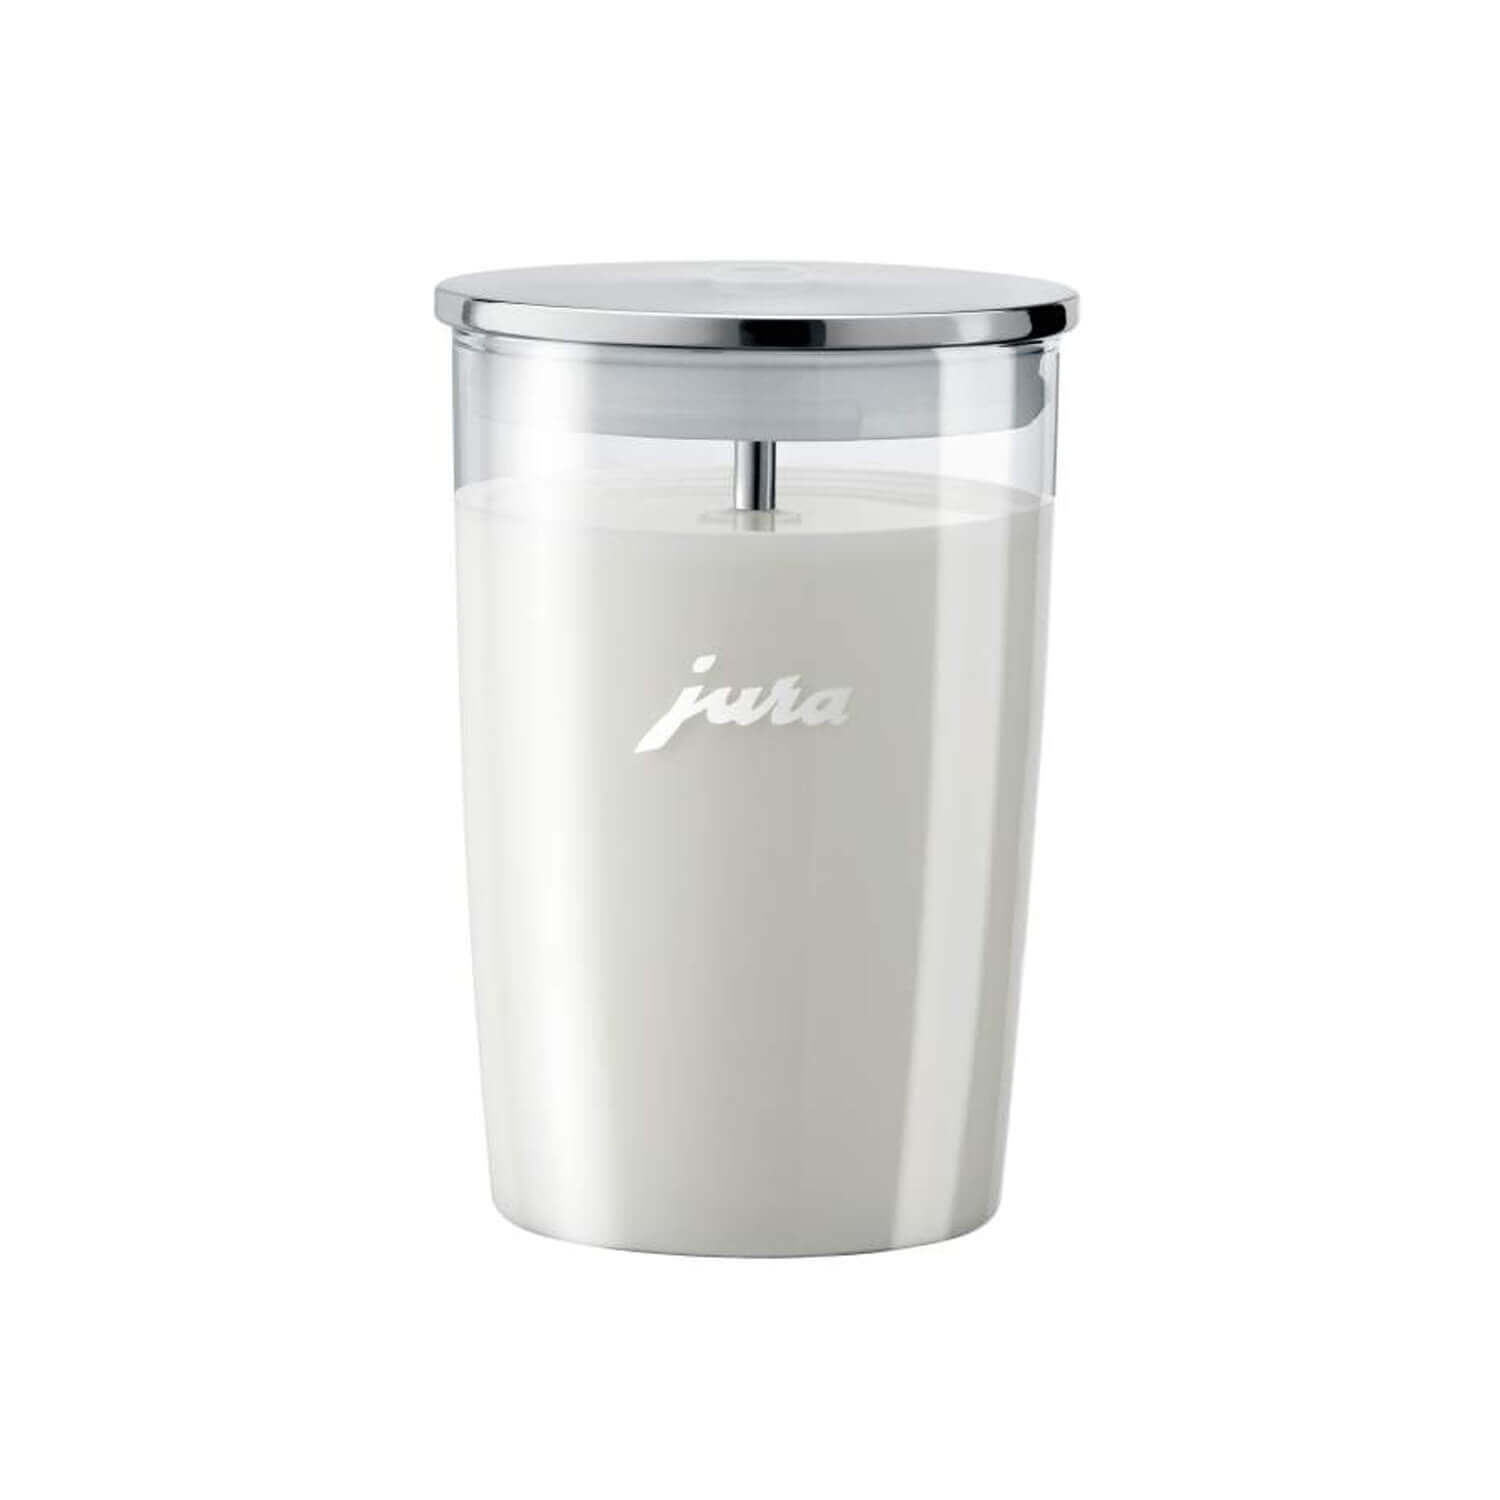 Jura - Milk container - Glass